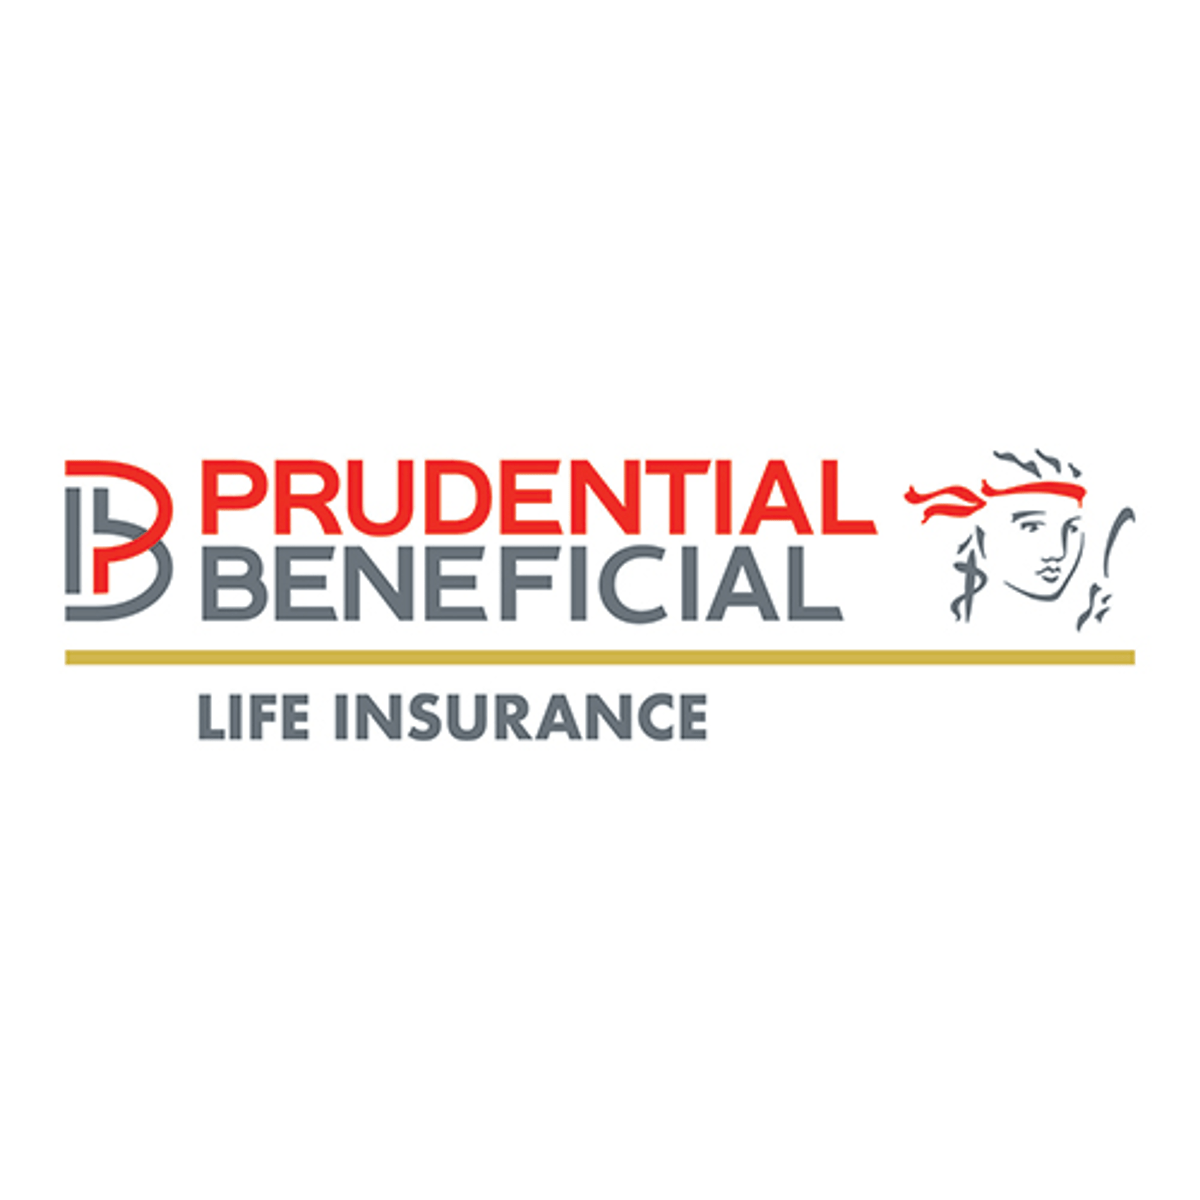 Prudential Beneficial Life Insurance logo